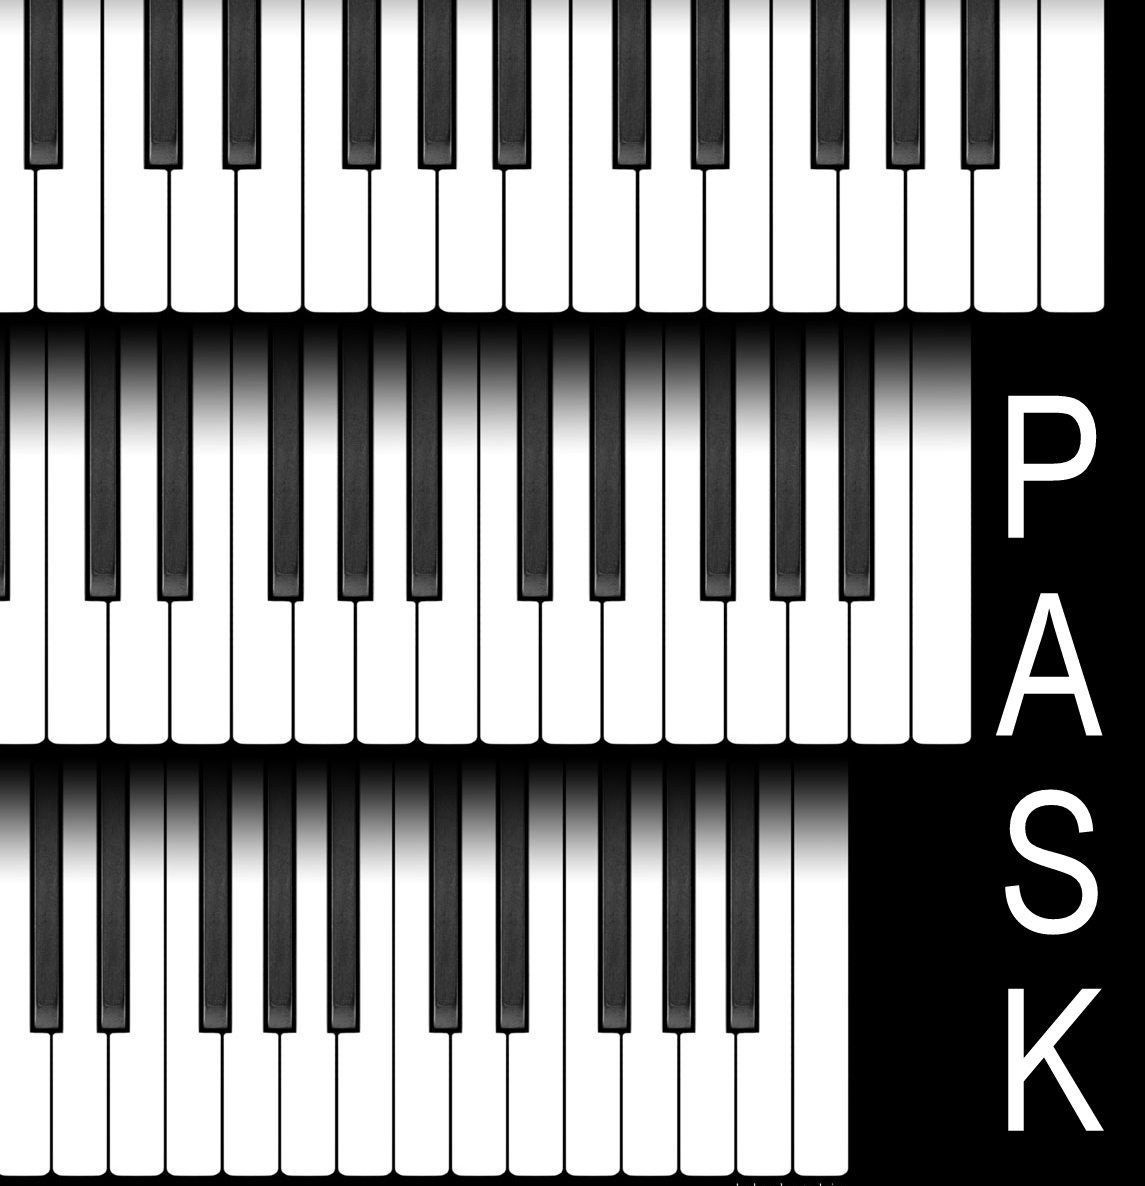 PIANISTS FOR ALTERNATIVELY SIZED KEYBOARDS